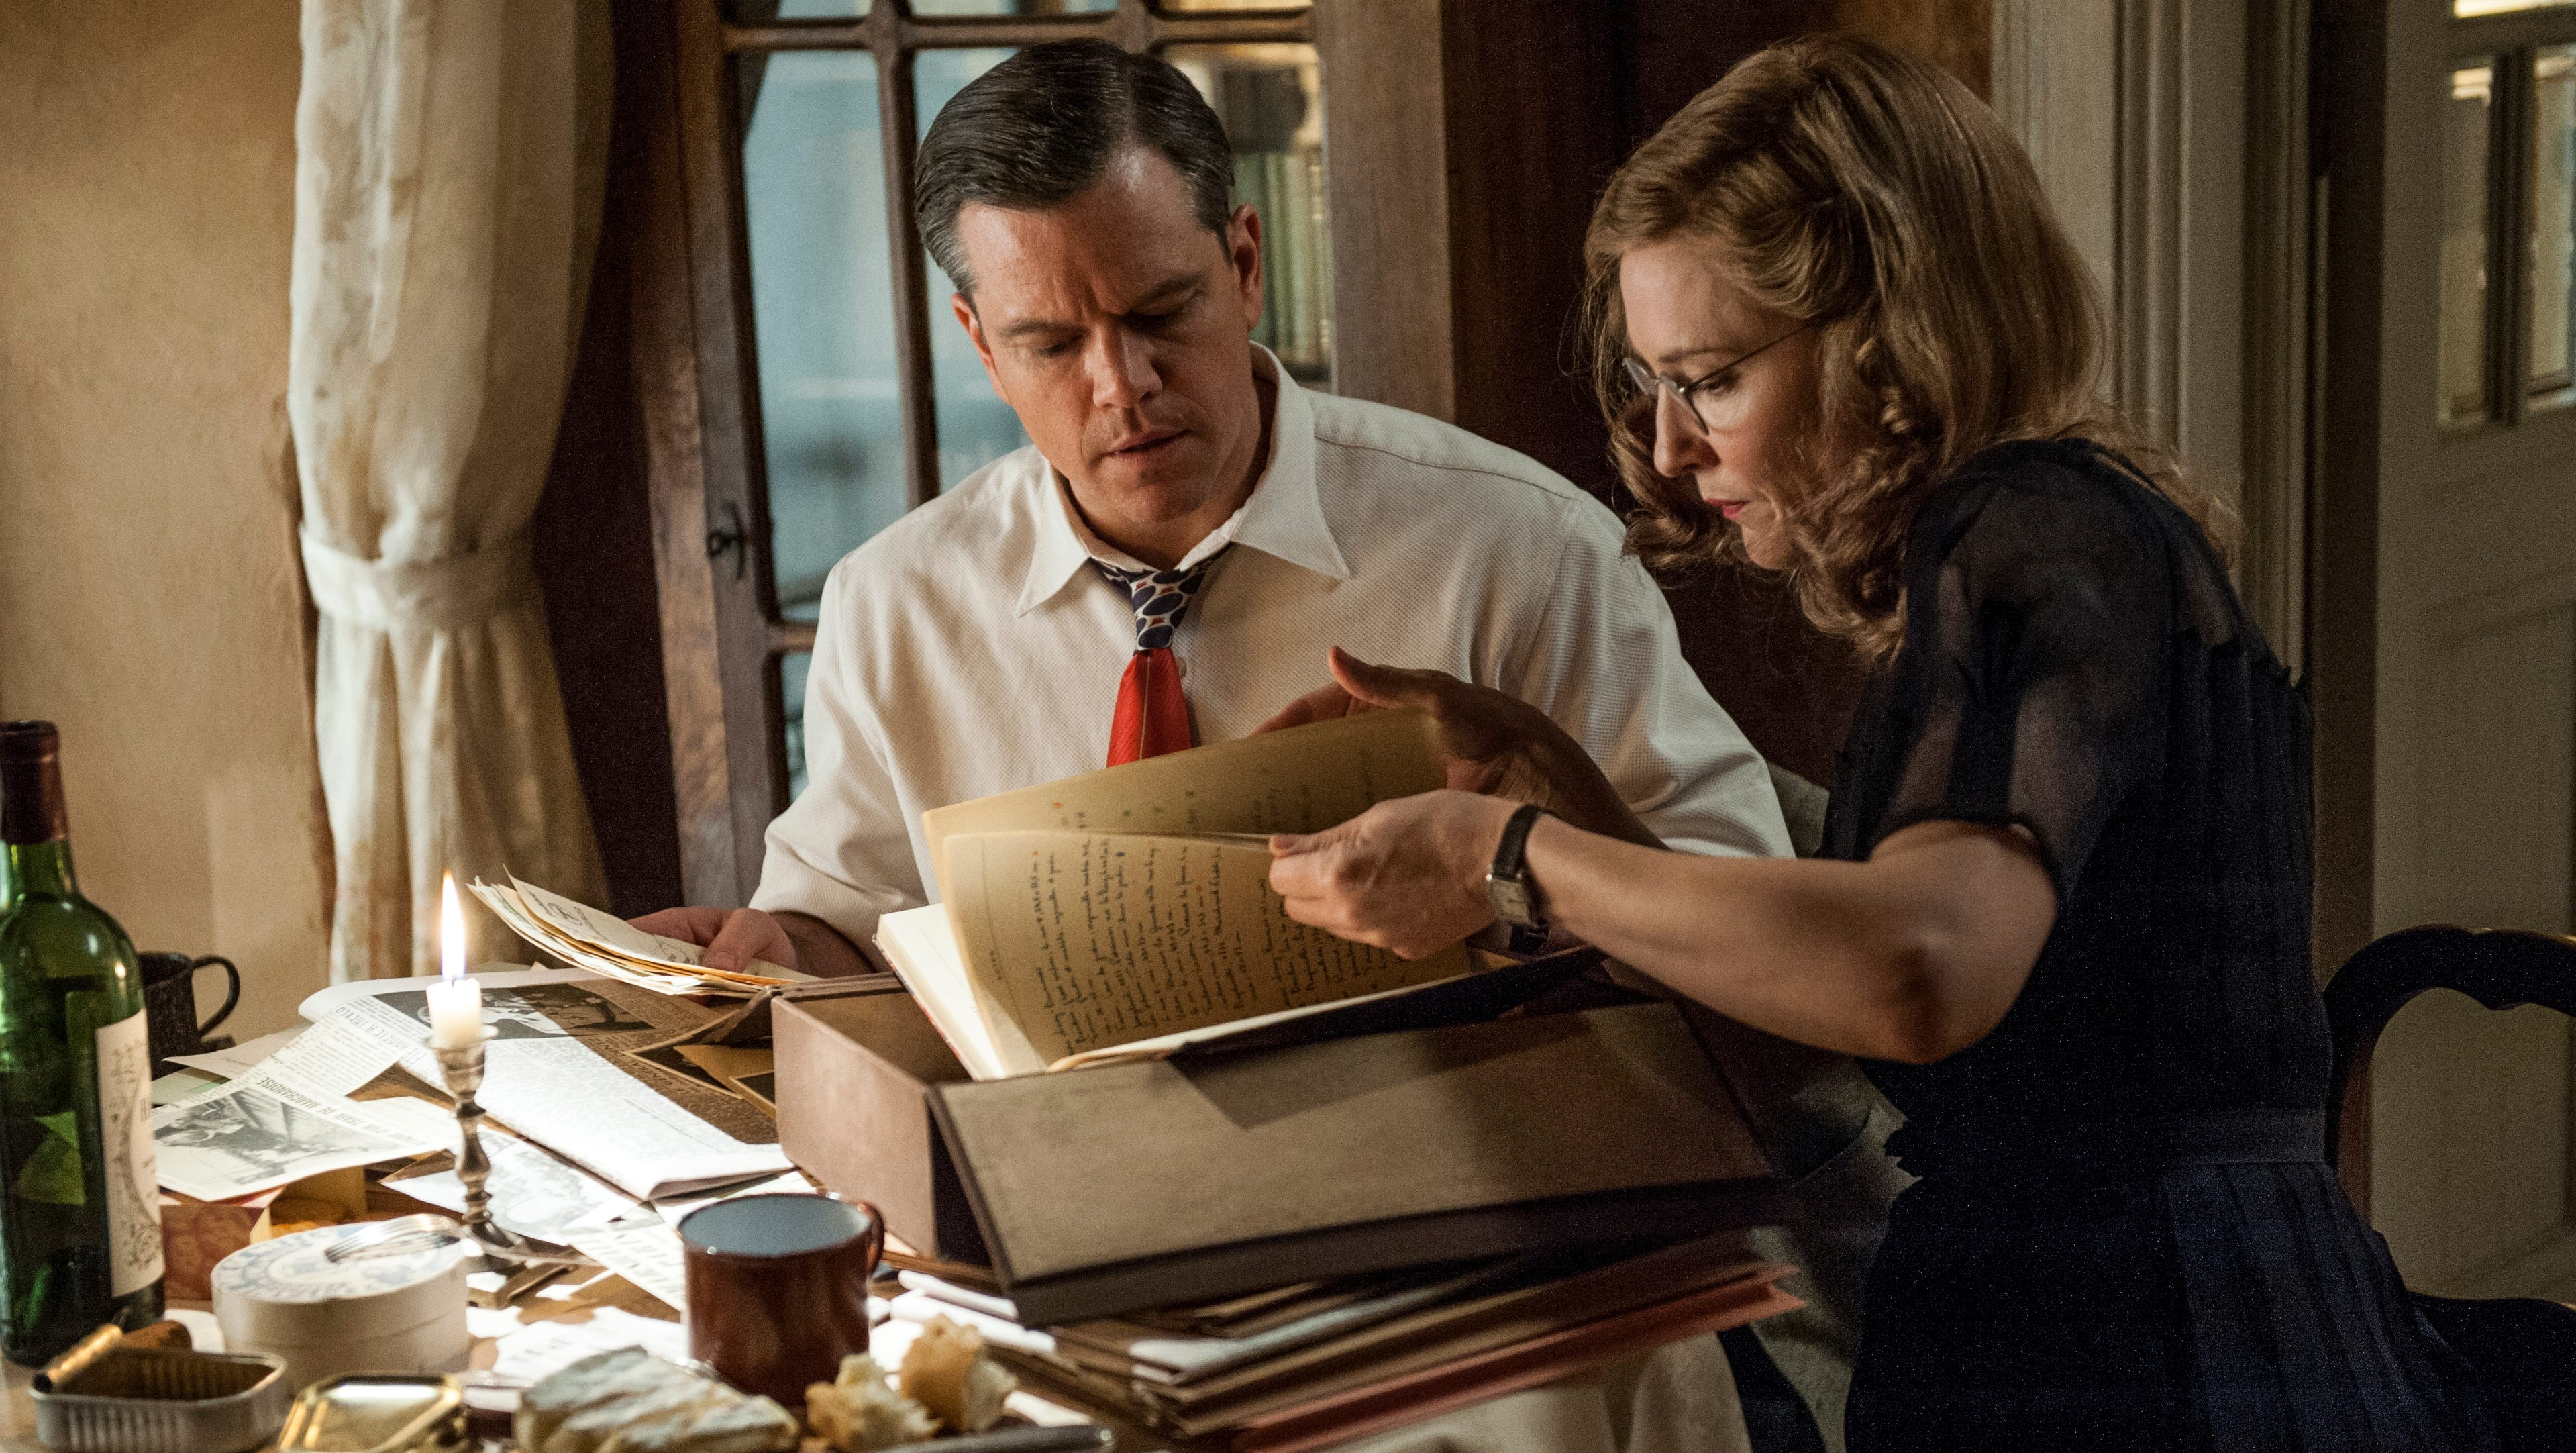 """Matt Damon and Cate Blanchett star in 'The Monuments Men.' """"It's great having an ensemble cast,"""" says producer Grant Heslov. """"Everyone can relax and just have fun."""""""